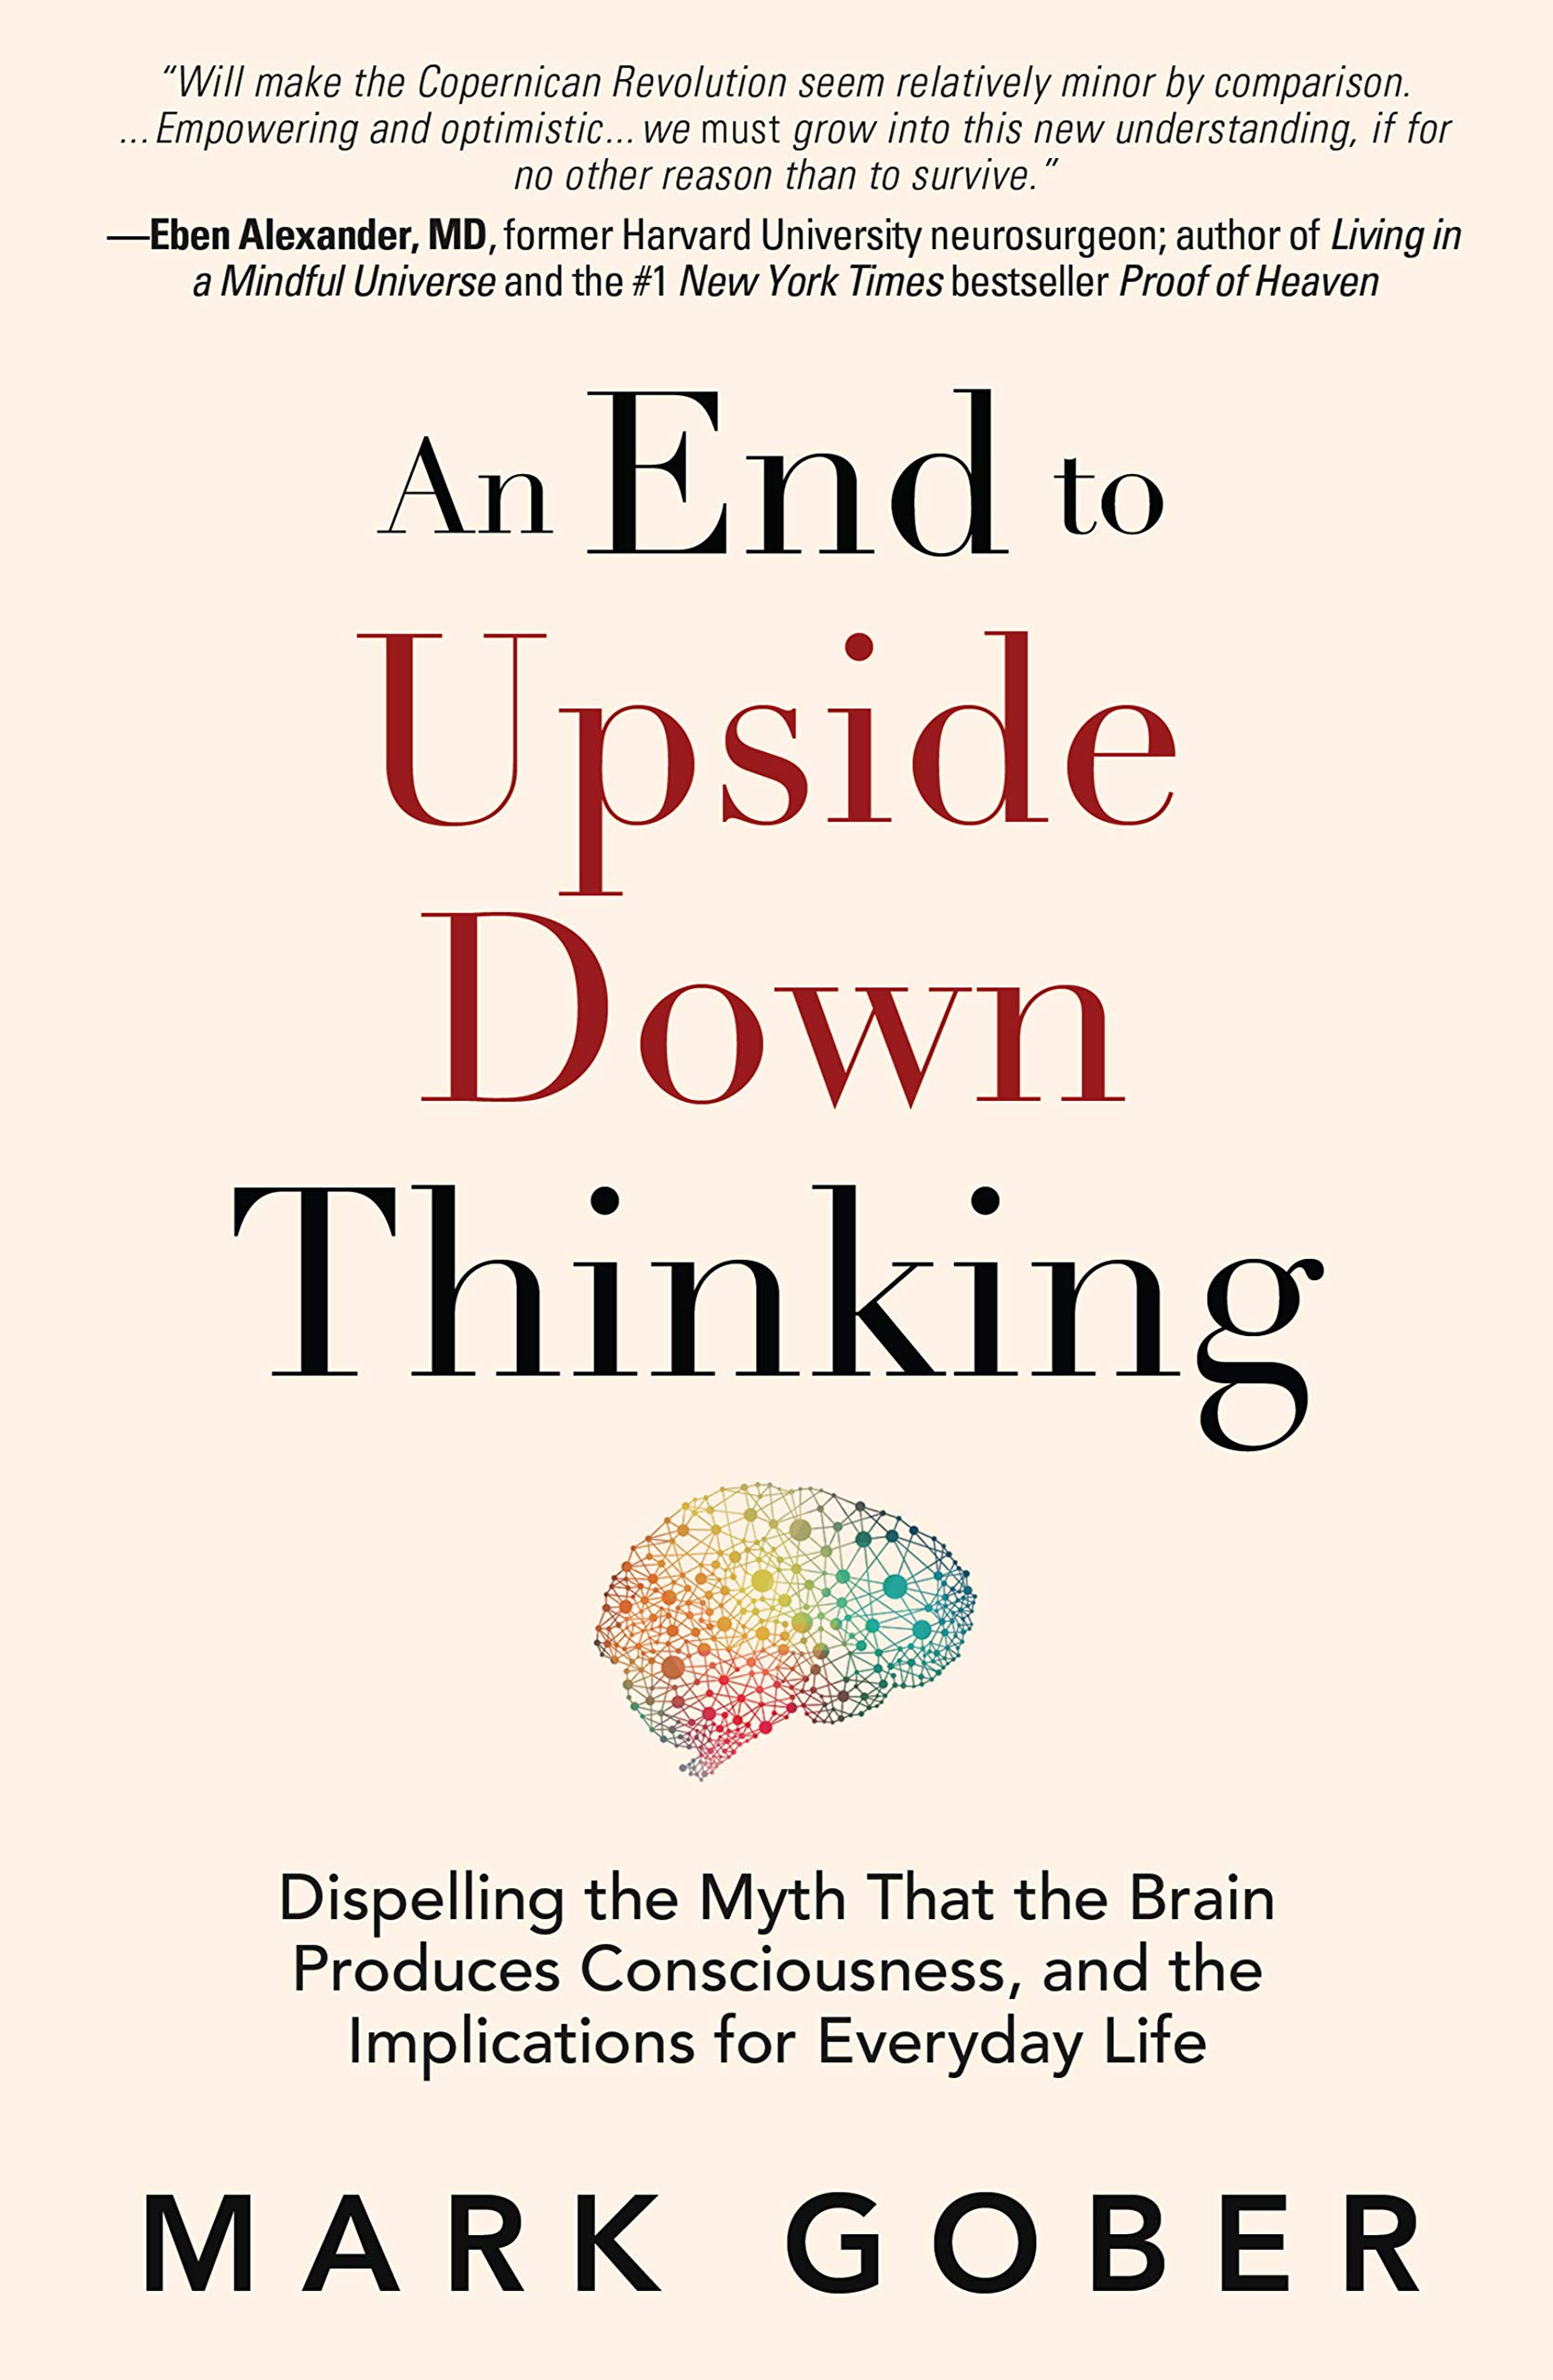 An End to Upside Down Thinking by Mark Gober